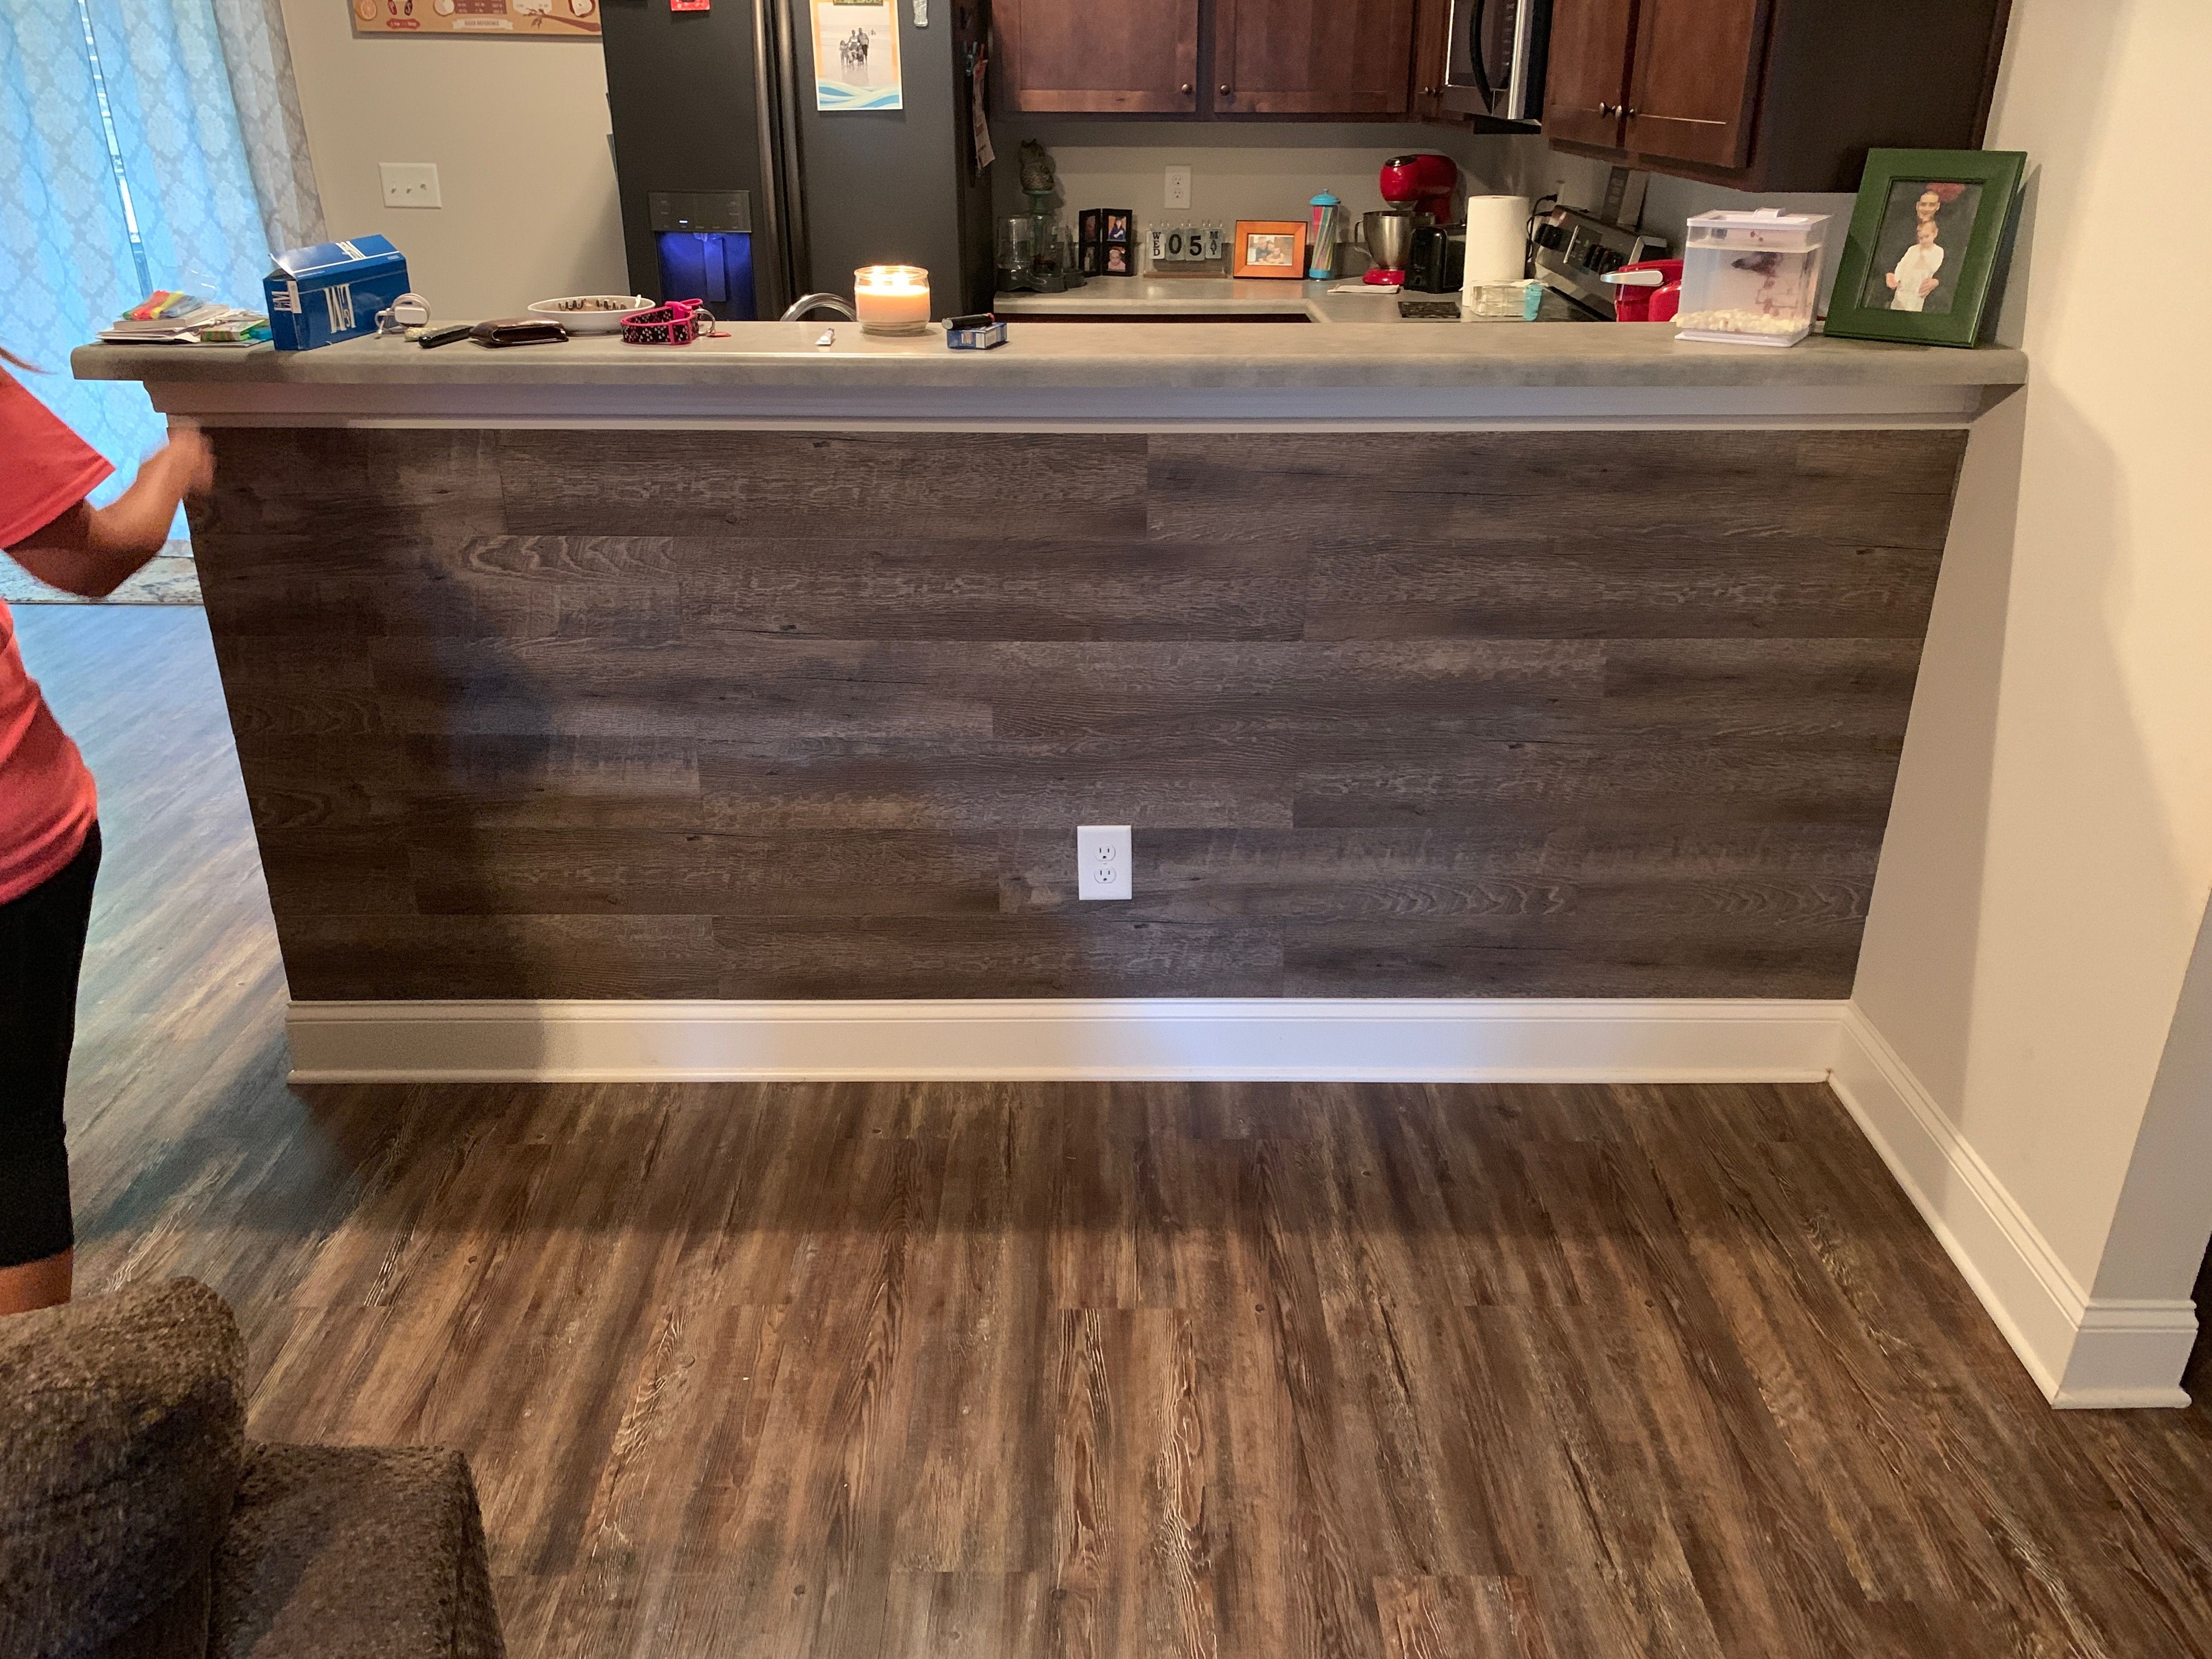 Made With Vinyl Flooring And Gorilla Glue Vinyl Flooring Wood Accent Wall Wood Accents